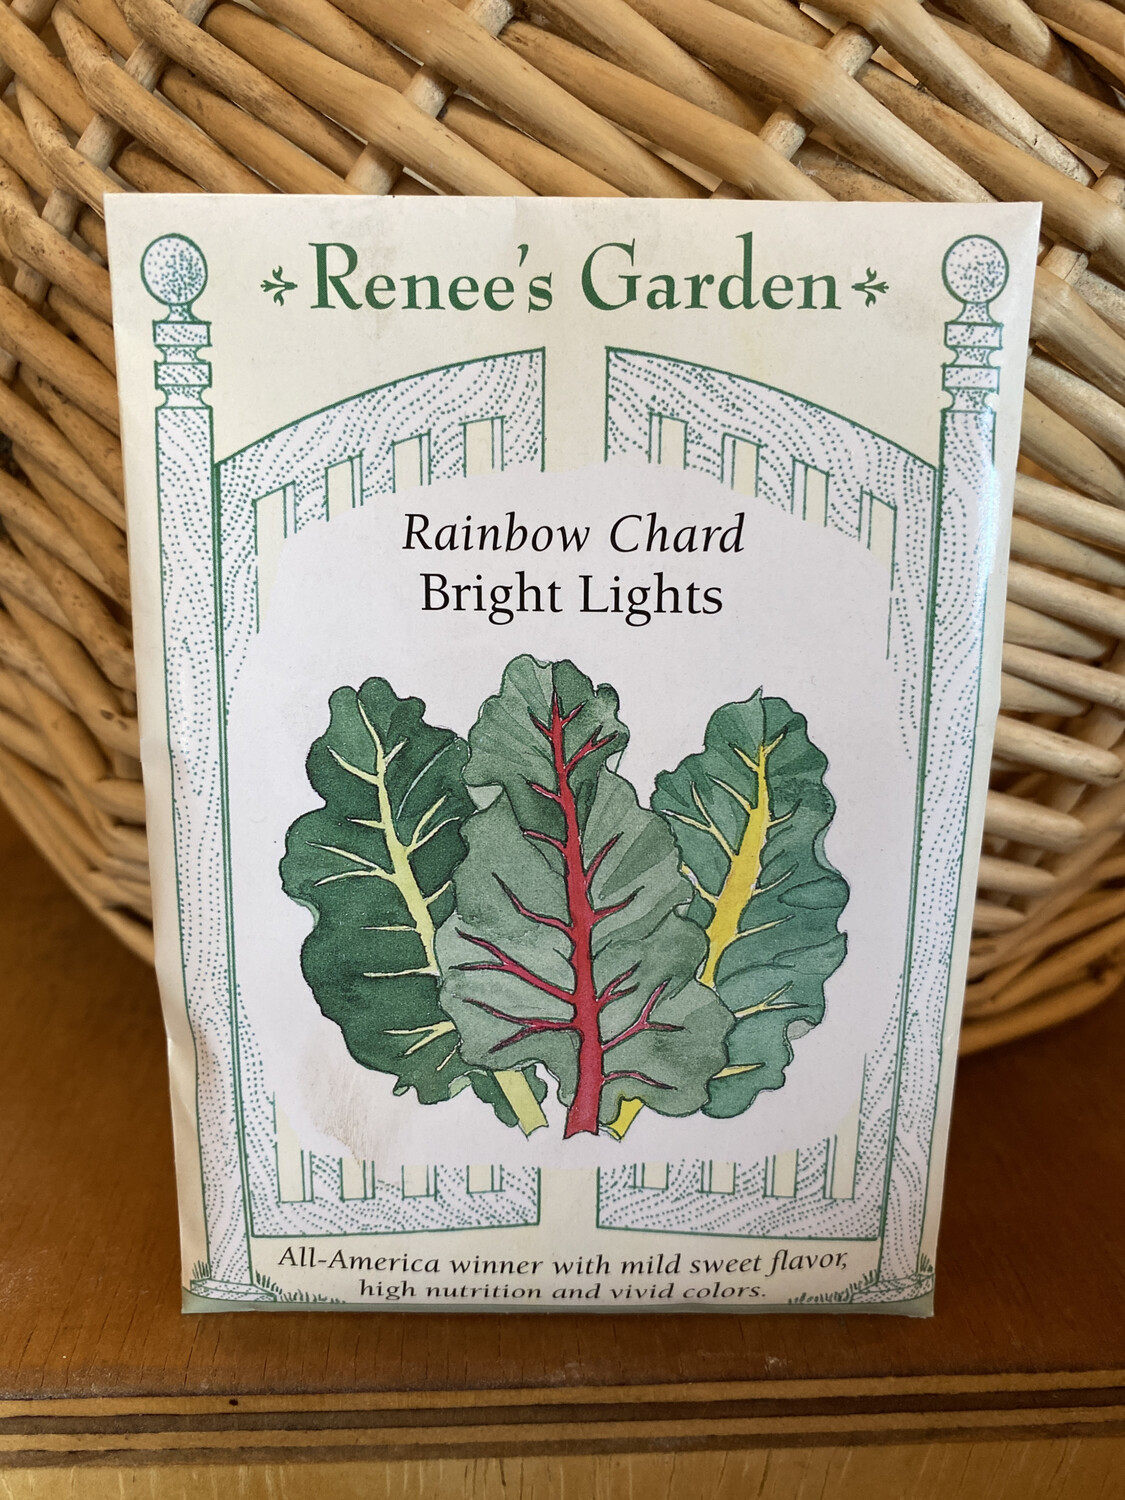 Rainbow Chard Bright Lights   Renee's Garden Seed Pack   Past Year's Seeds   Reduced Price